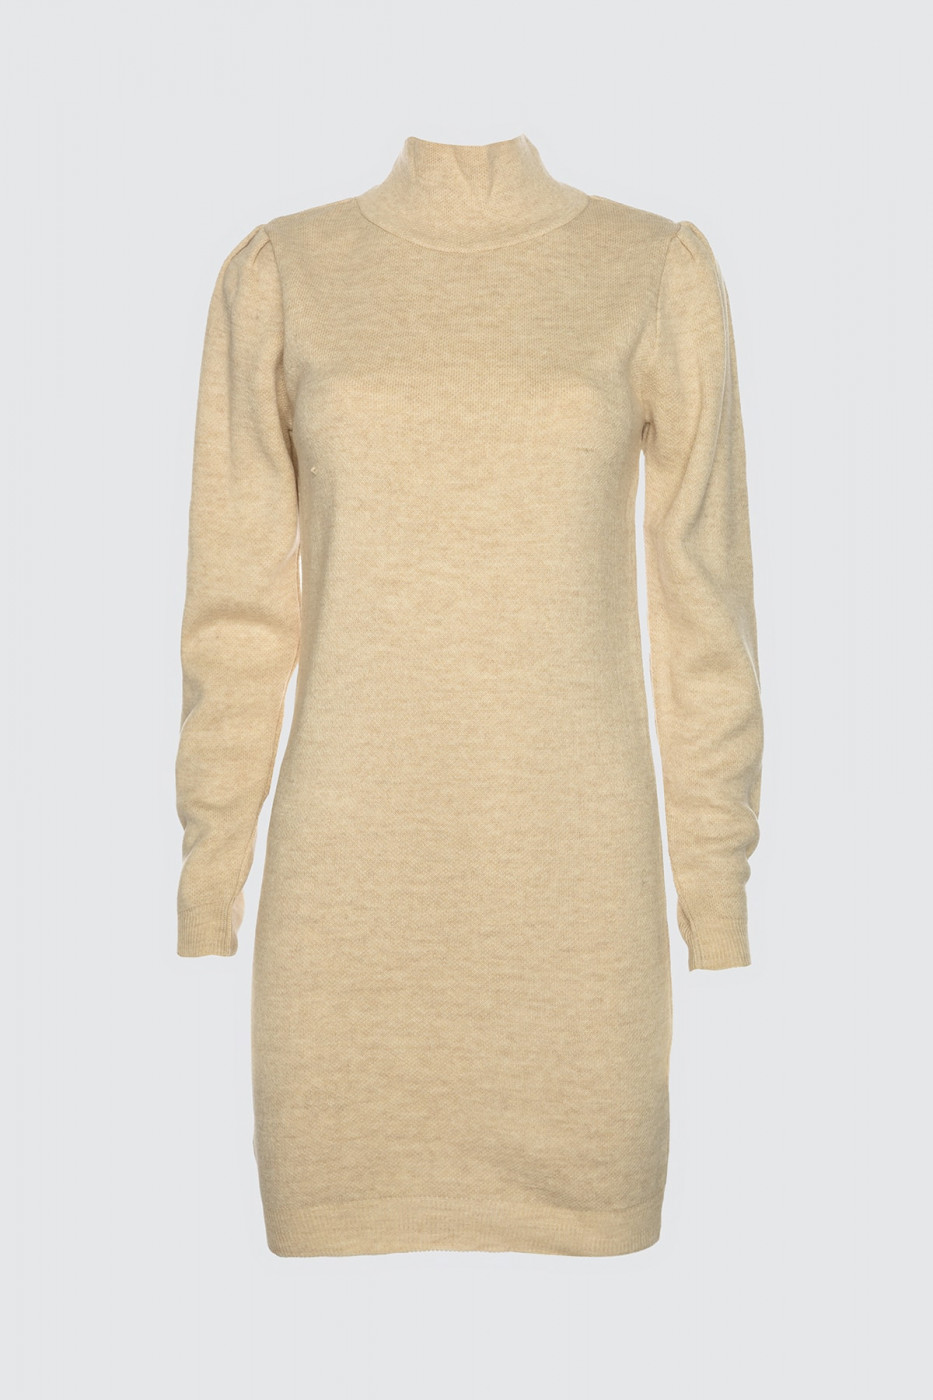 Trendyol Ekru Flat Color Sleeve Detailed Knitwear Dress